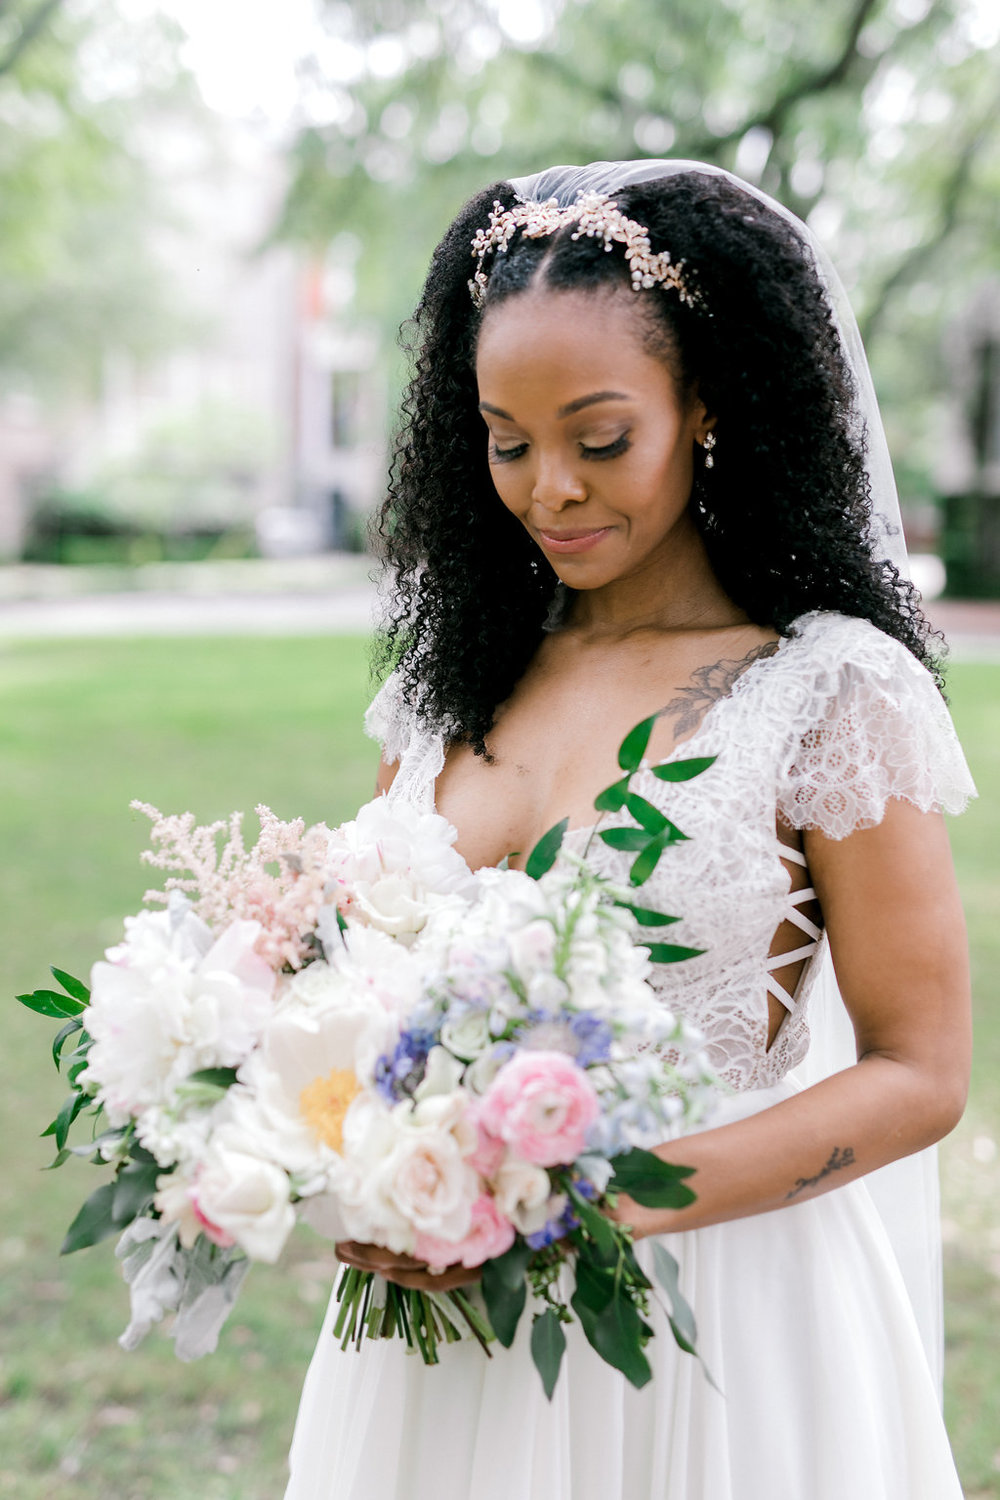 savannah-bridal-shop-i-and-b-florals-sonya-and-josh-colorful-rustic-boho-wedding-florals-at-soho-south-cafe-savannah-ga-wedding-danielle-george-photography-7.JPG